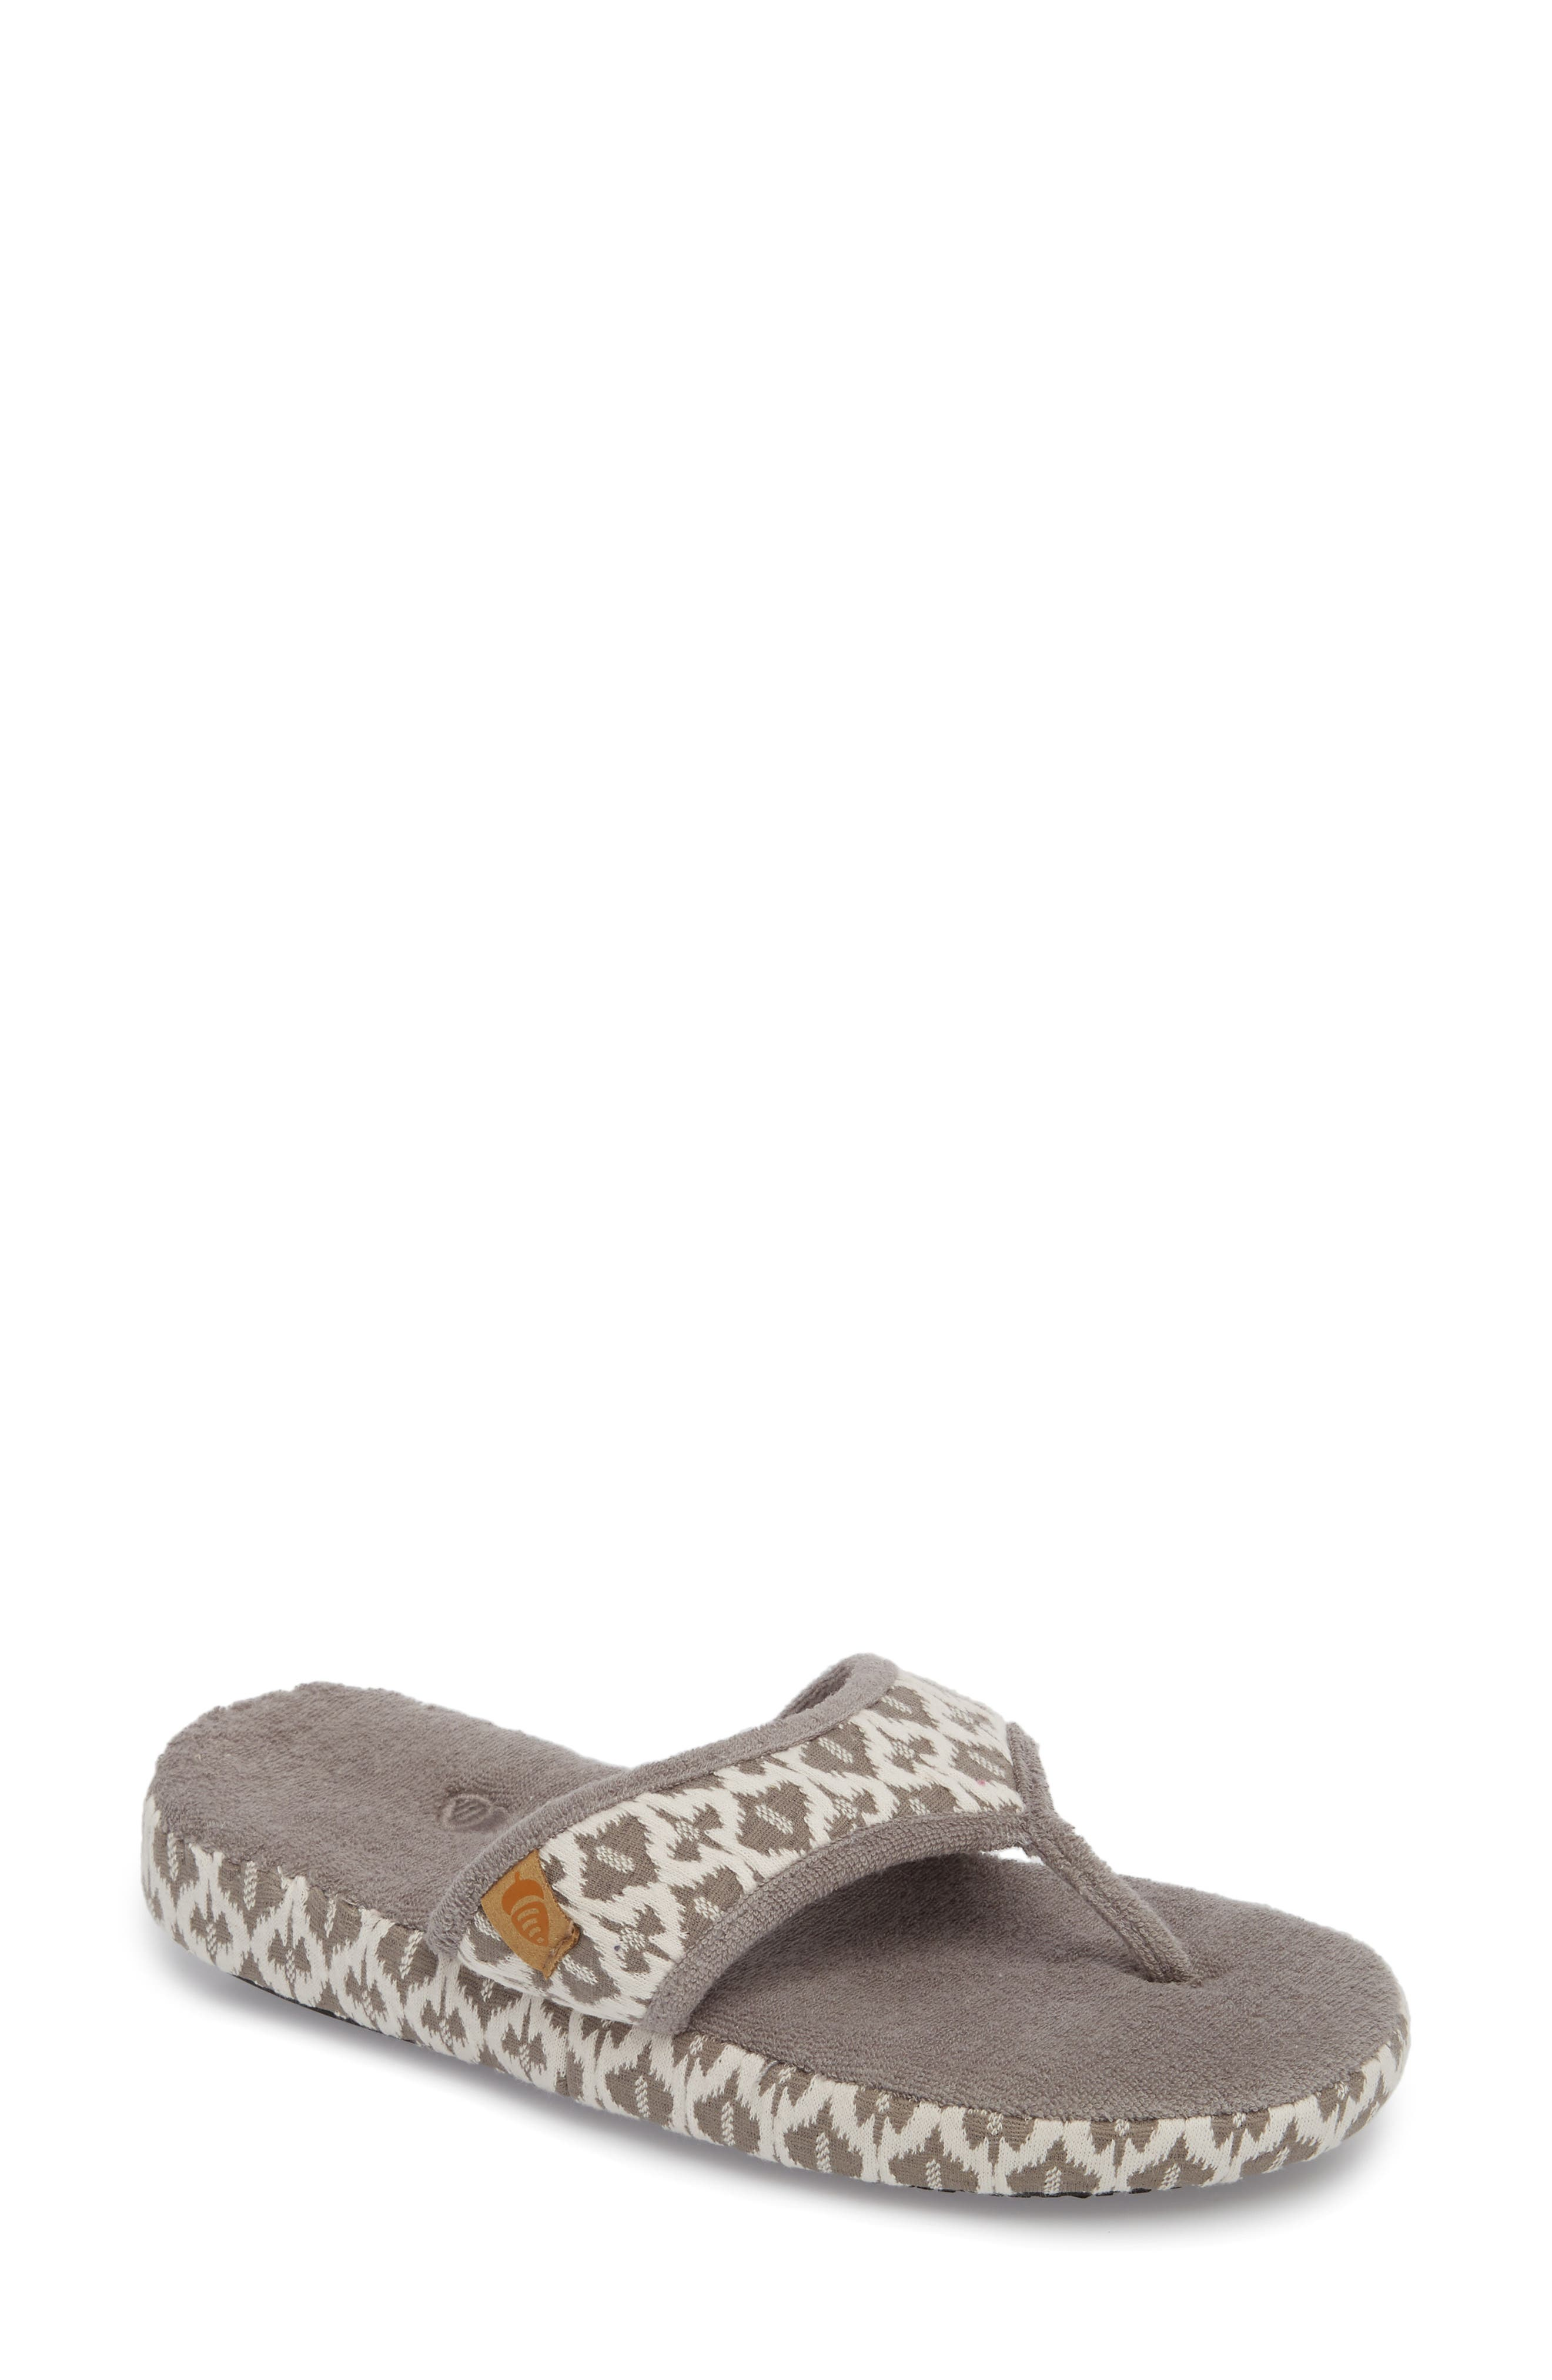 'Summerweight' Slipper,                         Main,                         color, ASH TRIBAL